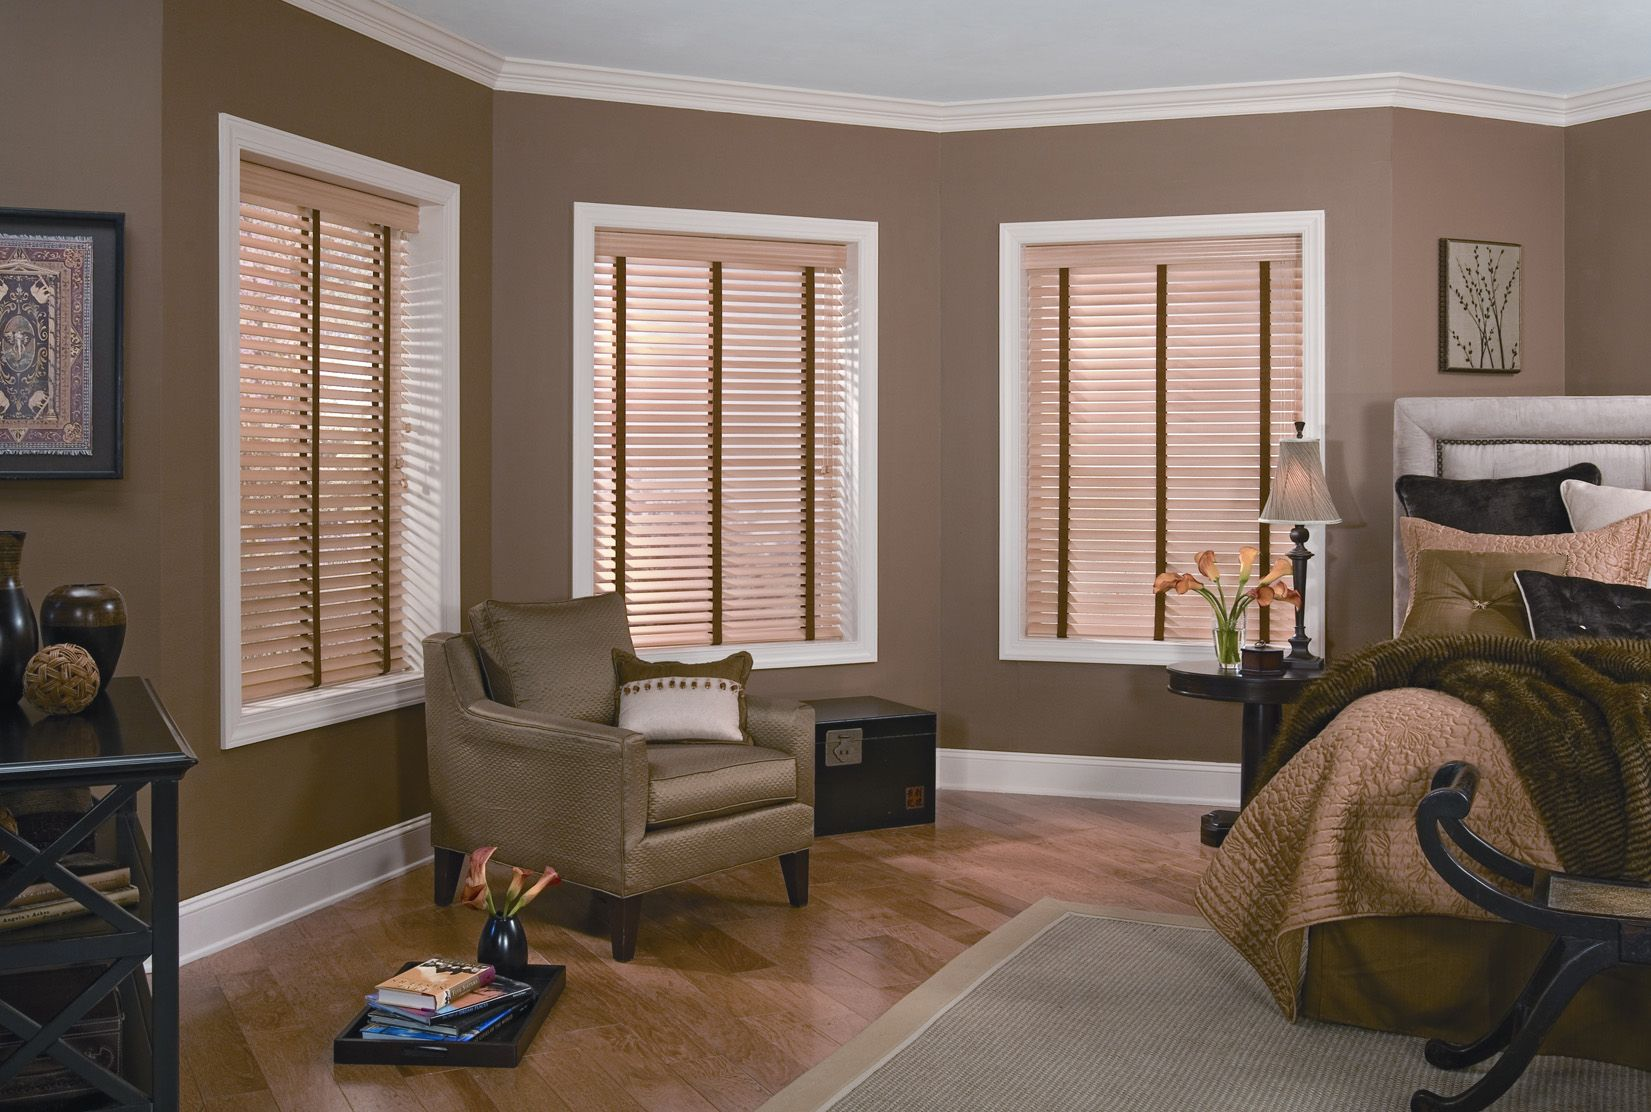 Window blinds ideas  to place an order with c u m textiles please visit